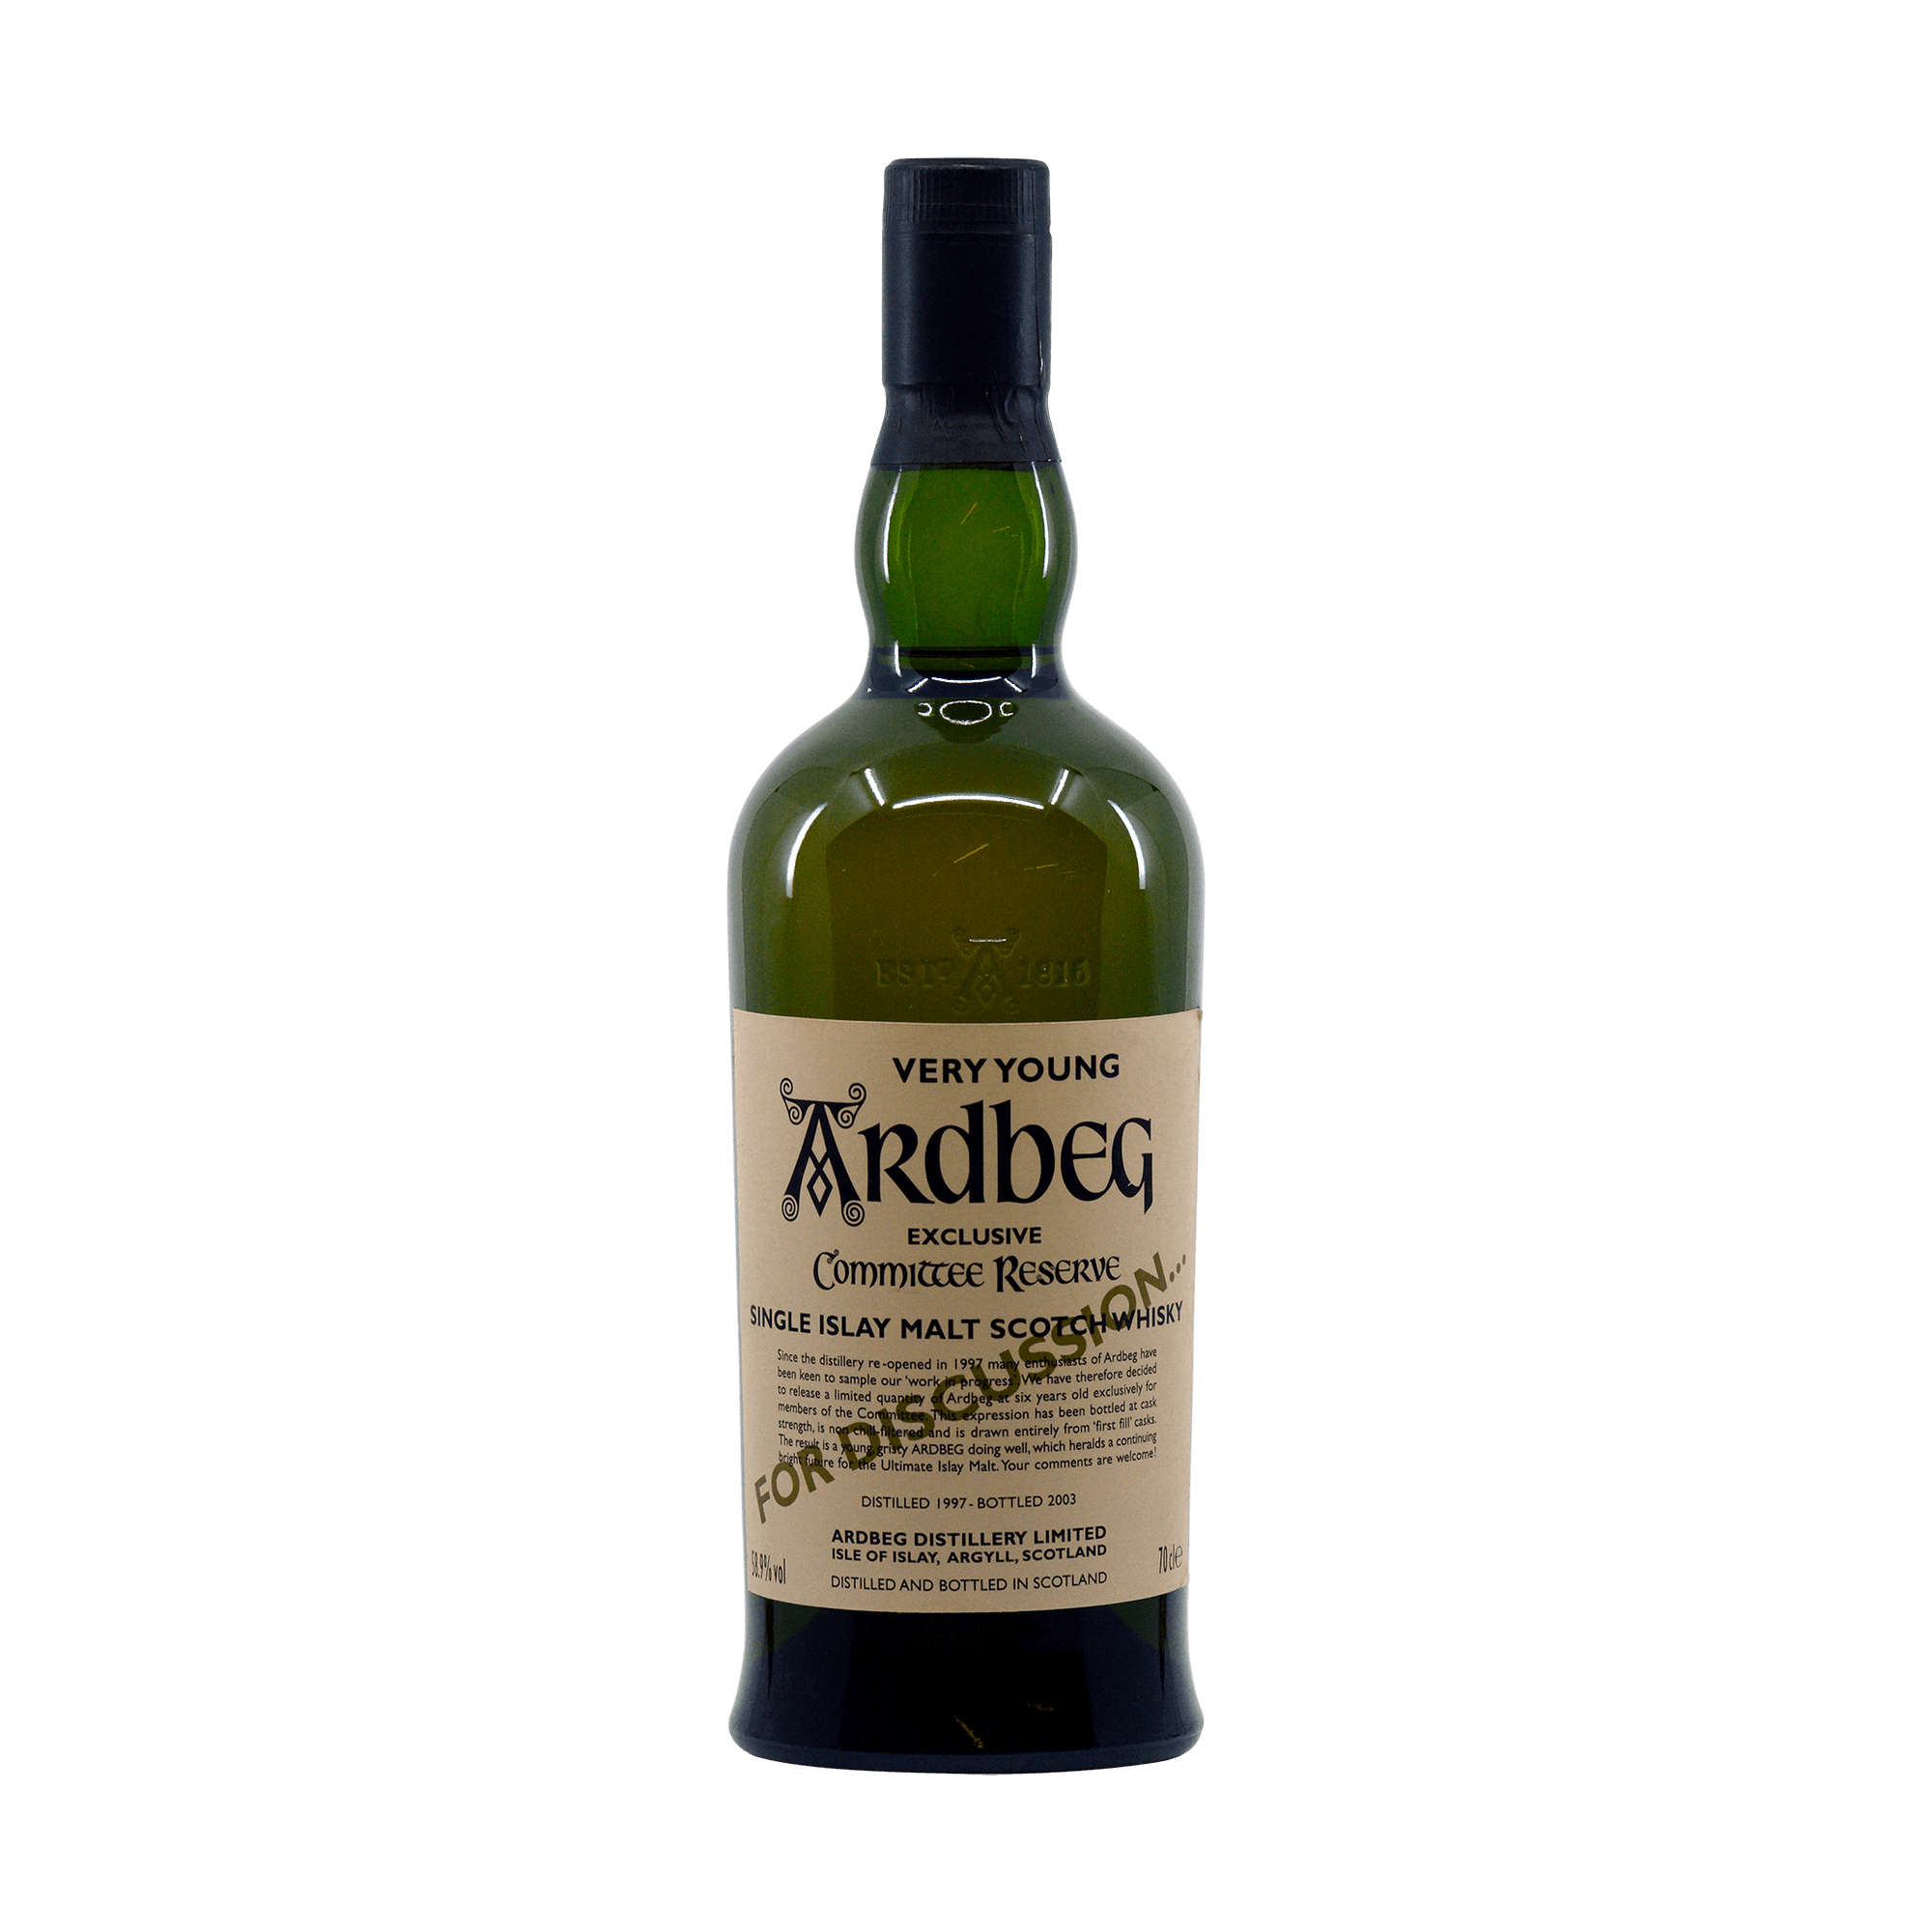 Ardbeg 2003 6 Year Old 'Very Young' For Discussion...